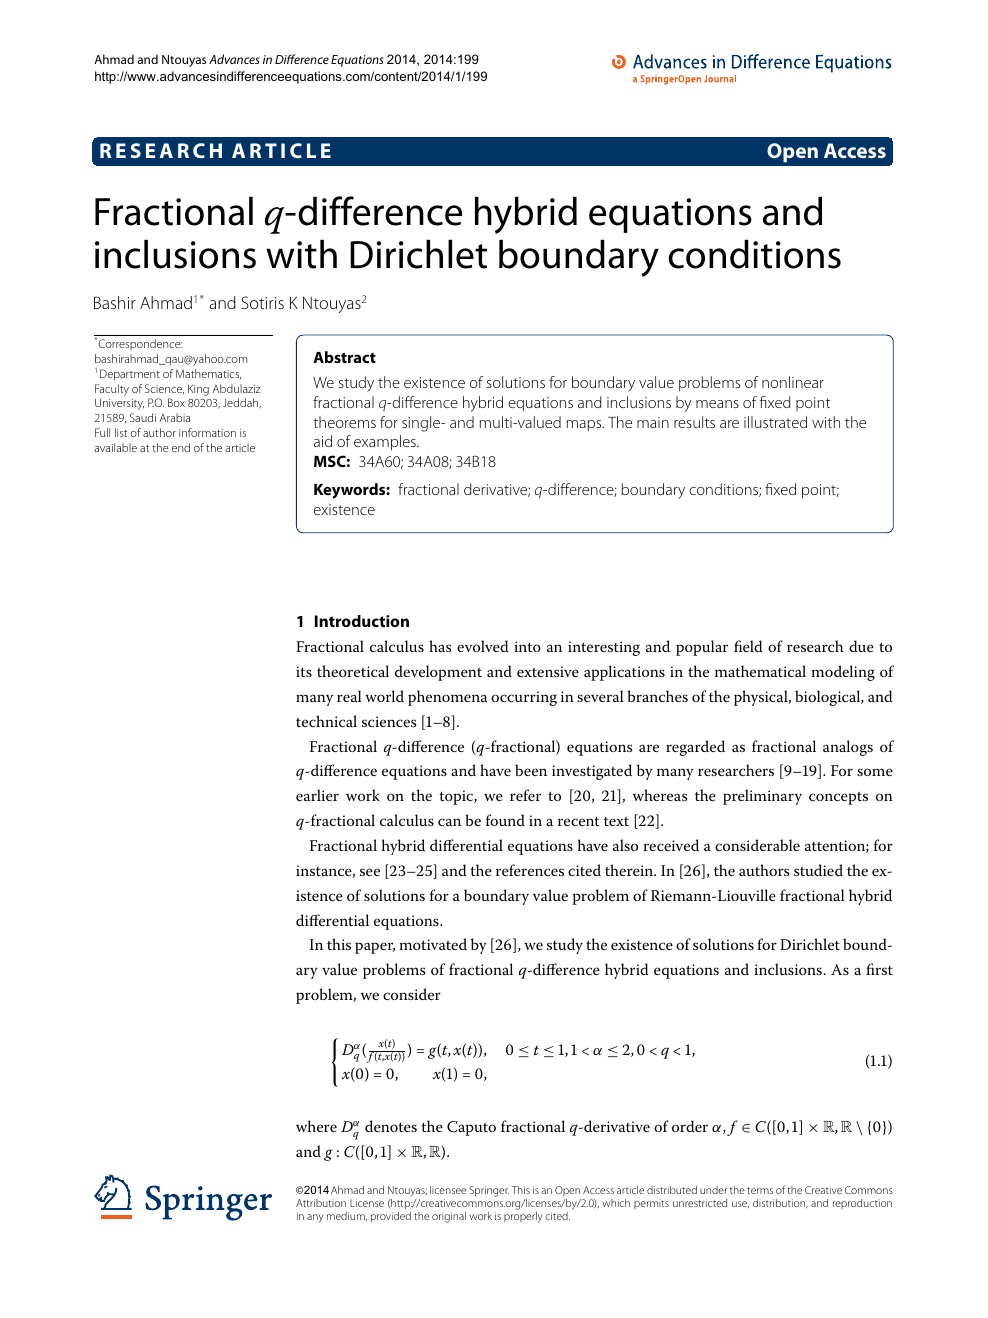 Fractional q-difference hybrid equations and inclusions with